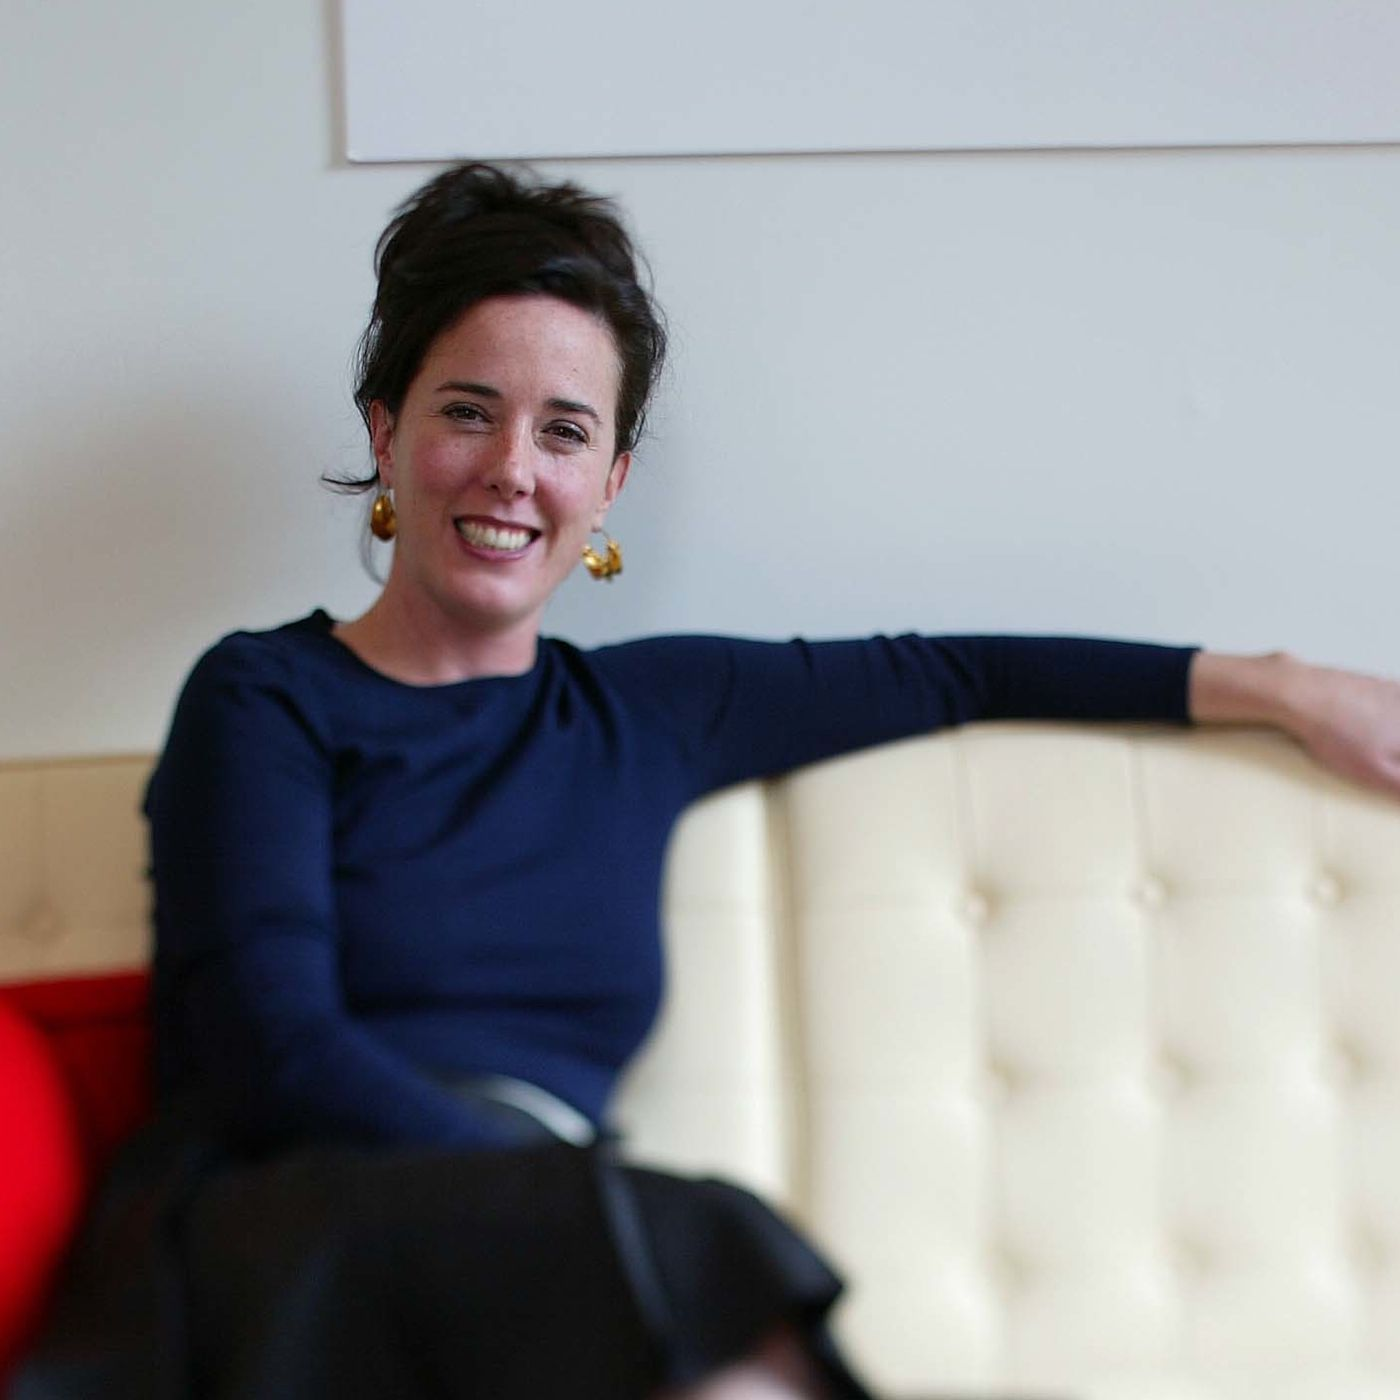 Kate Spade Found Dead At 55 Racked